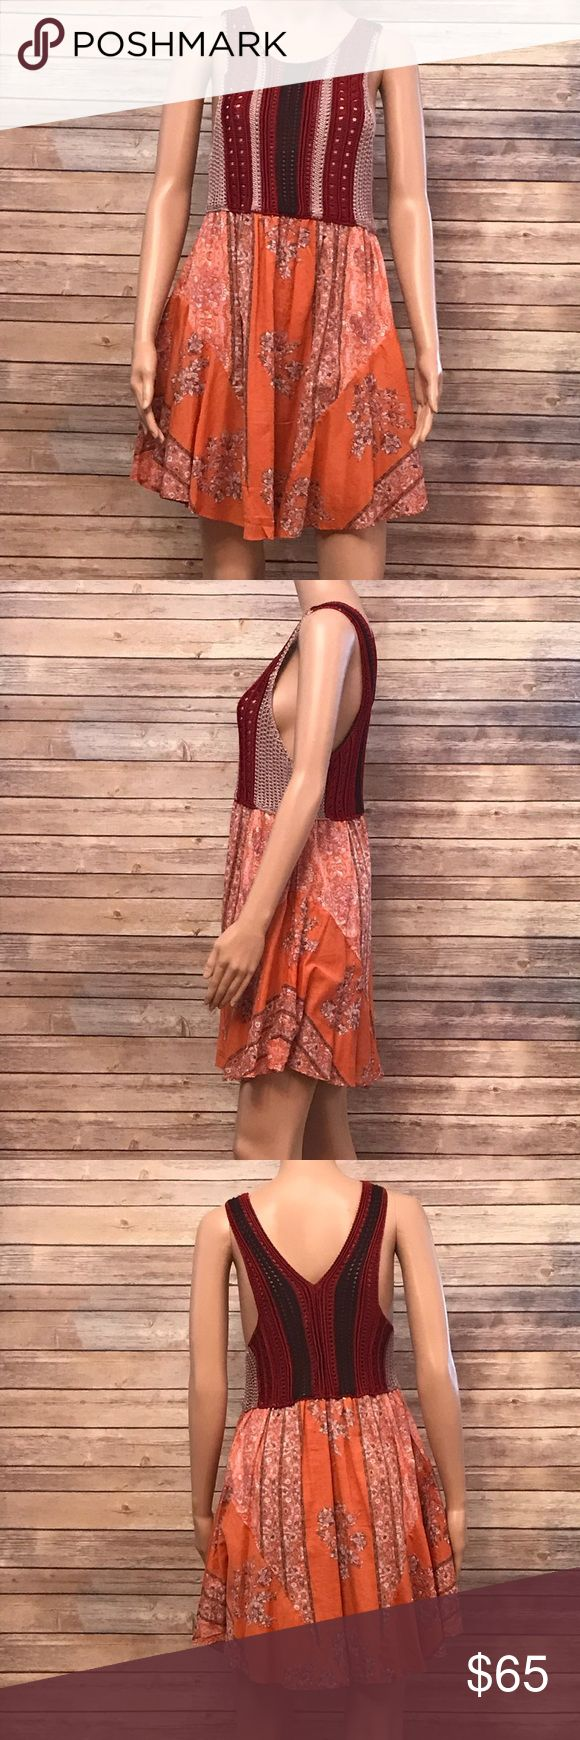 Free People Red Combo Dress 109 Bodice: 100% Rayon Skirt: 100% Cotton  Lining: 100% Rayon  Hand Wash cold Free People Dresses